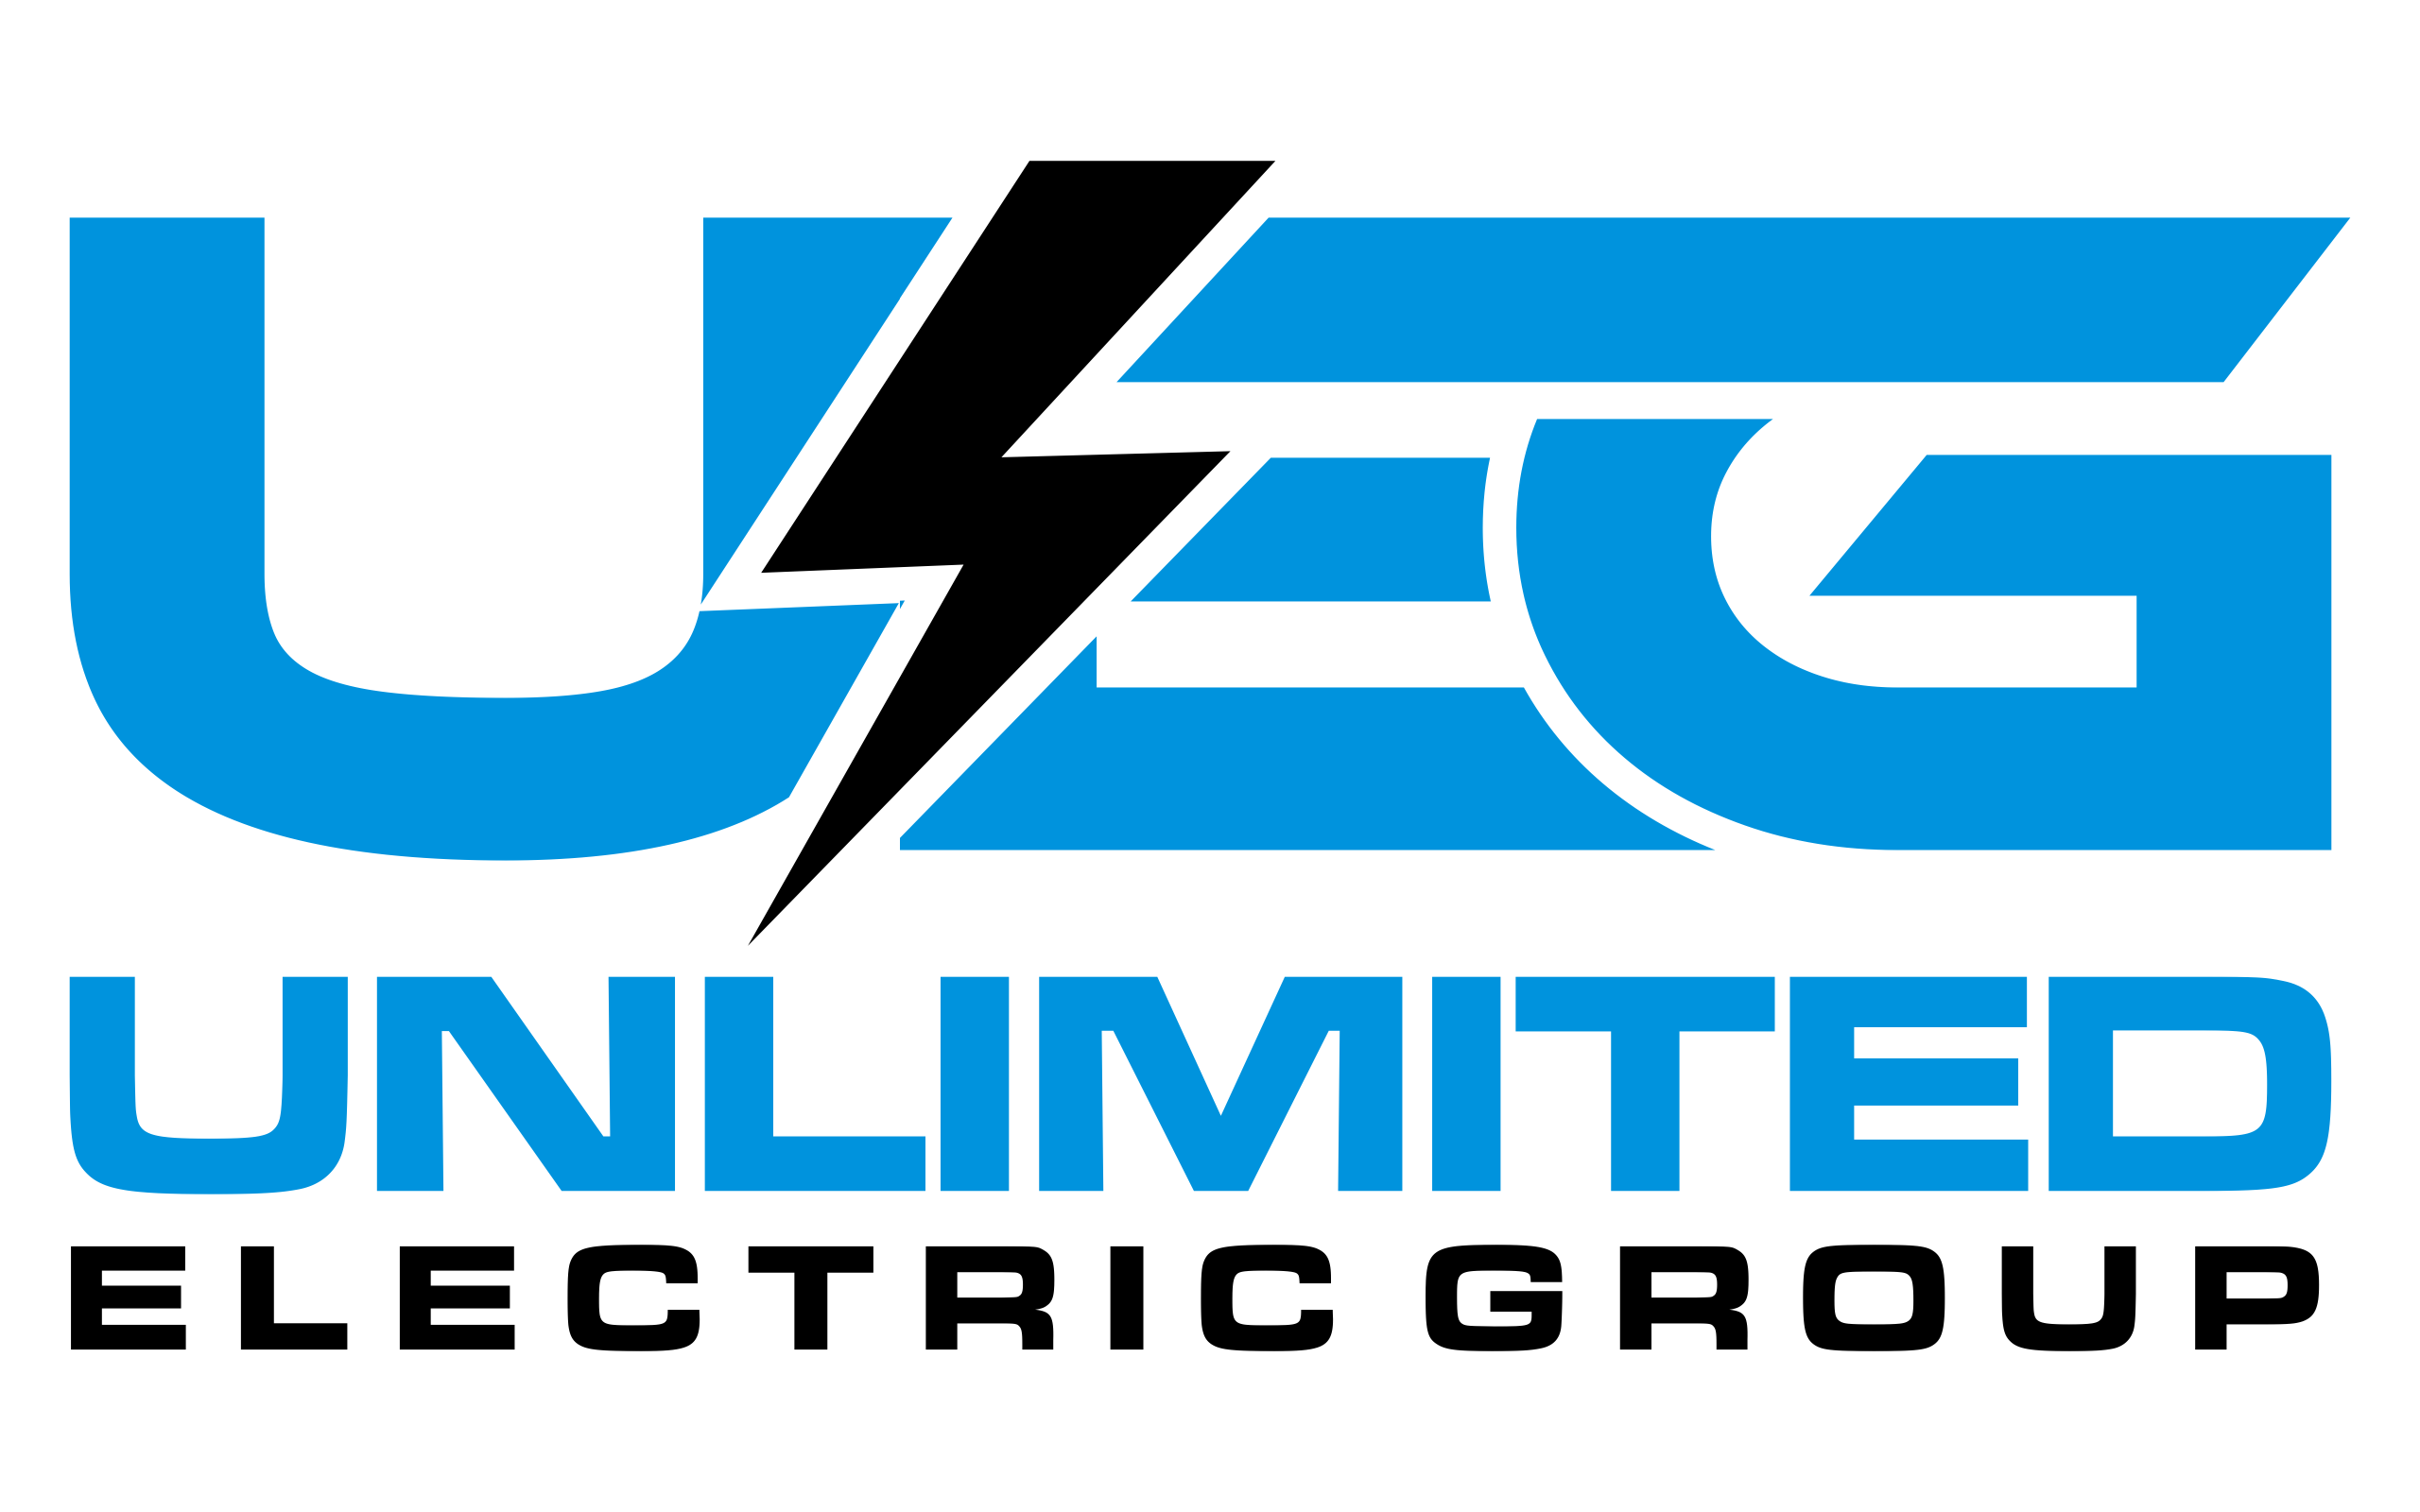 unlimited electric group logo